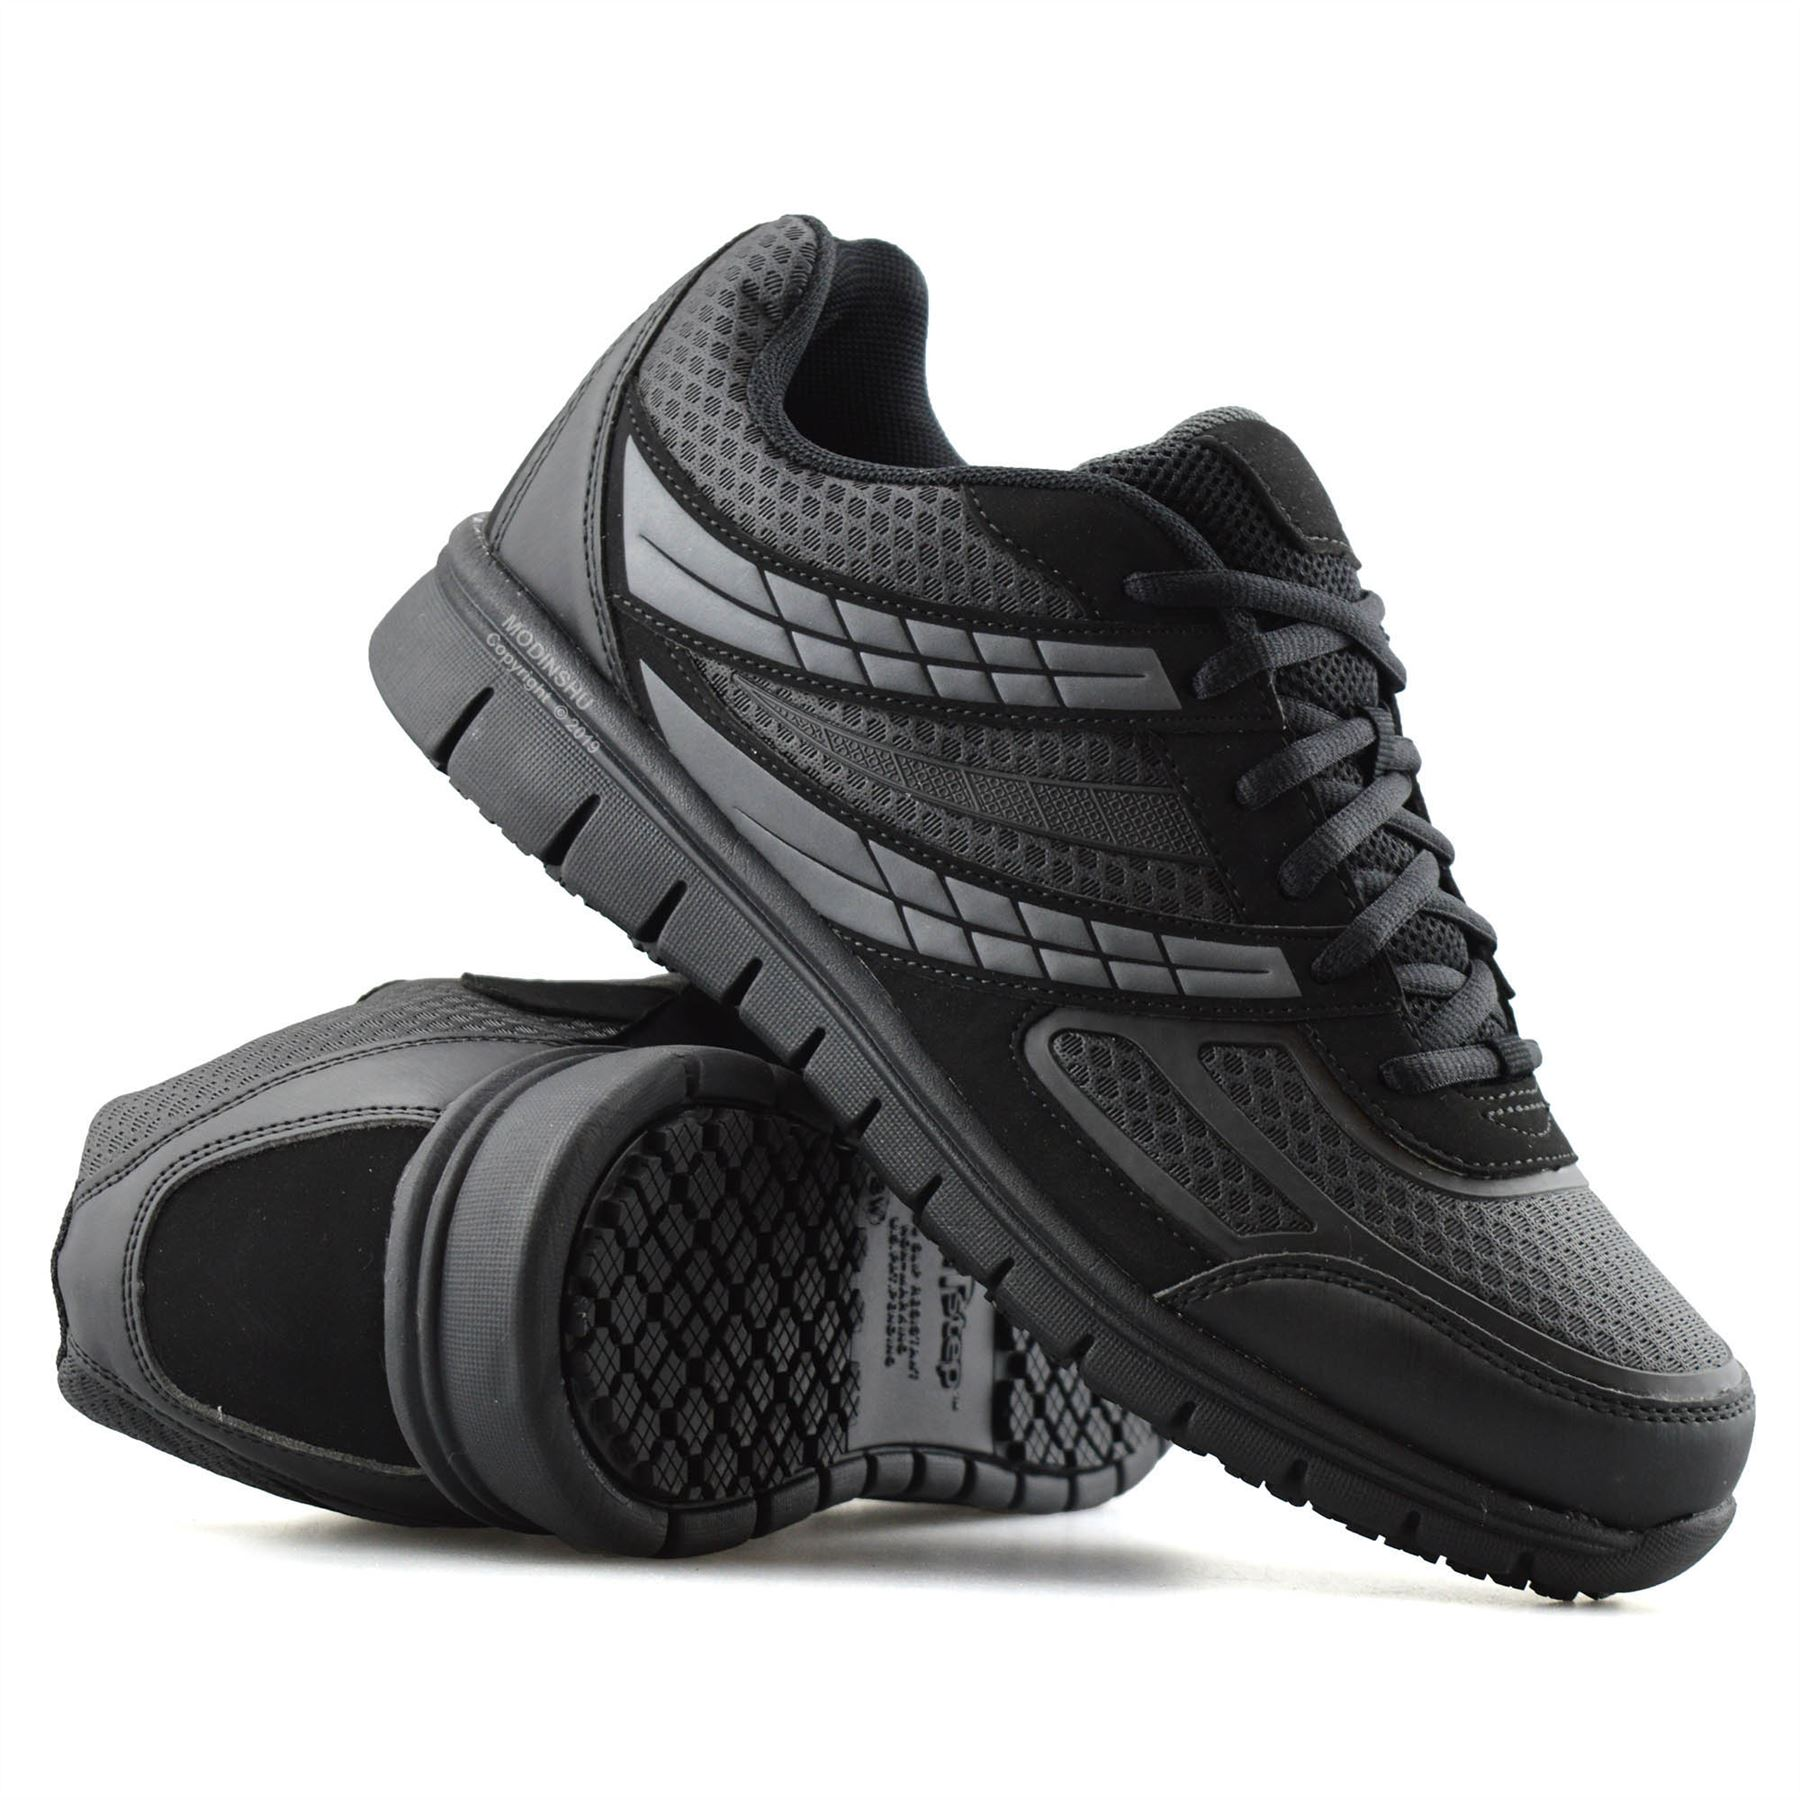 Mens-Casual-Lace-Up-Non-Slip-Memory-Foam-Walking-Hiking-Work-Trainers-Shoes-Size thumbnail 15